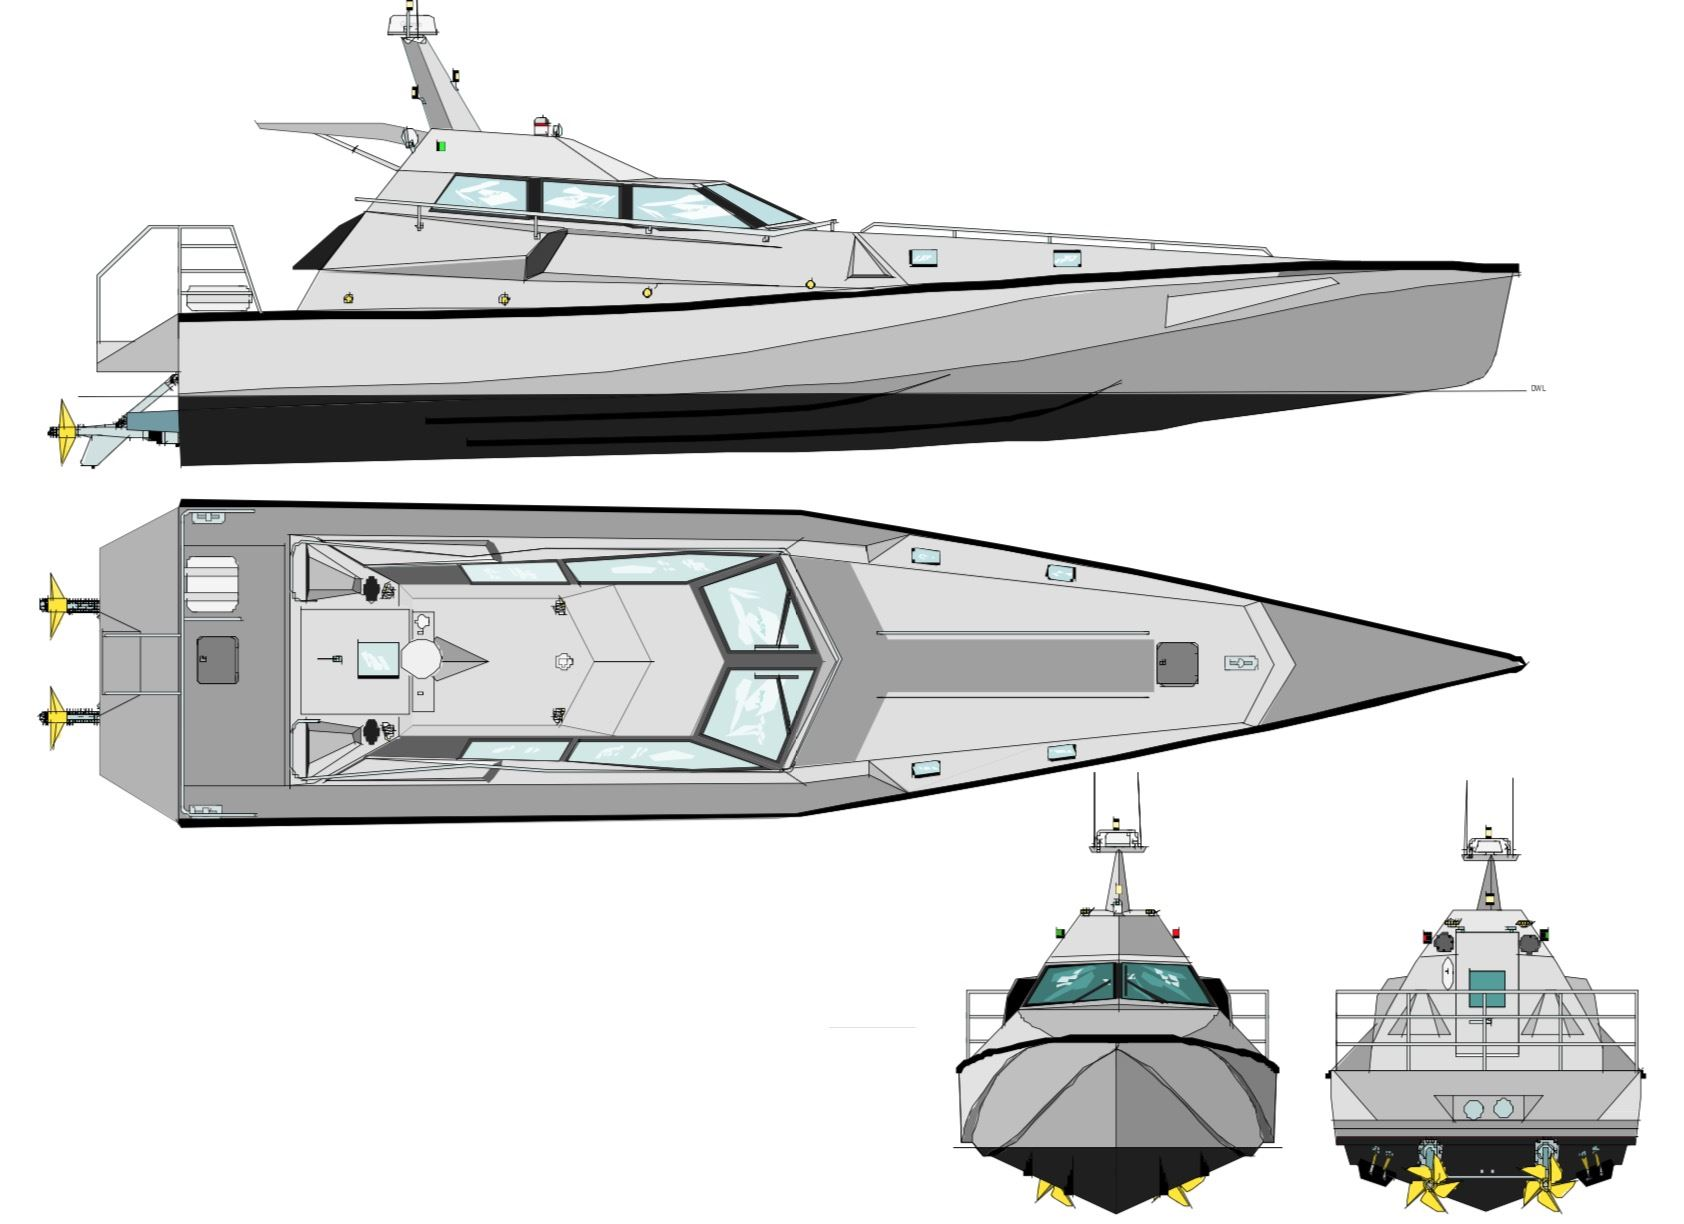 4159: NEW BUILD - XSV 17 High Speed Interceptor / Patrol Vessel - 096.jpg